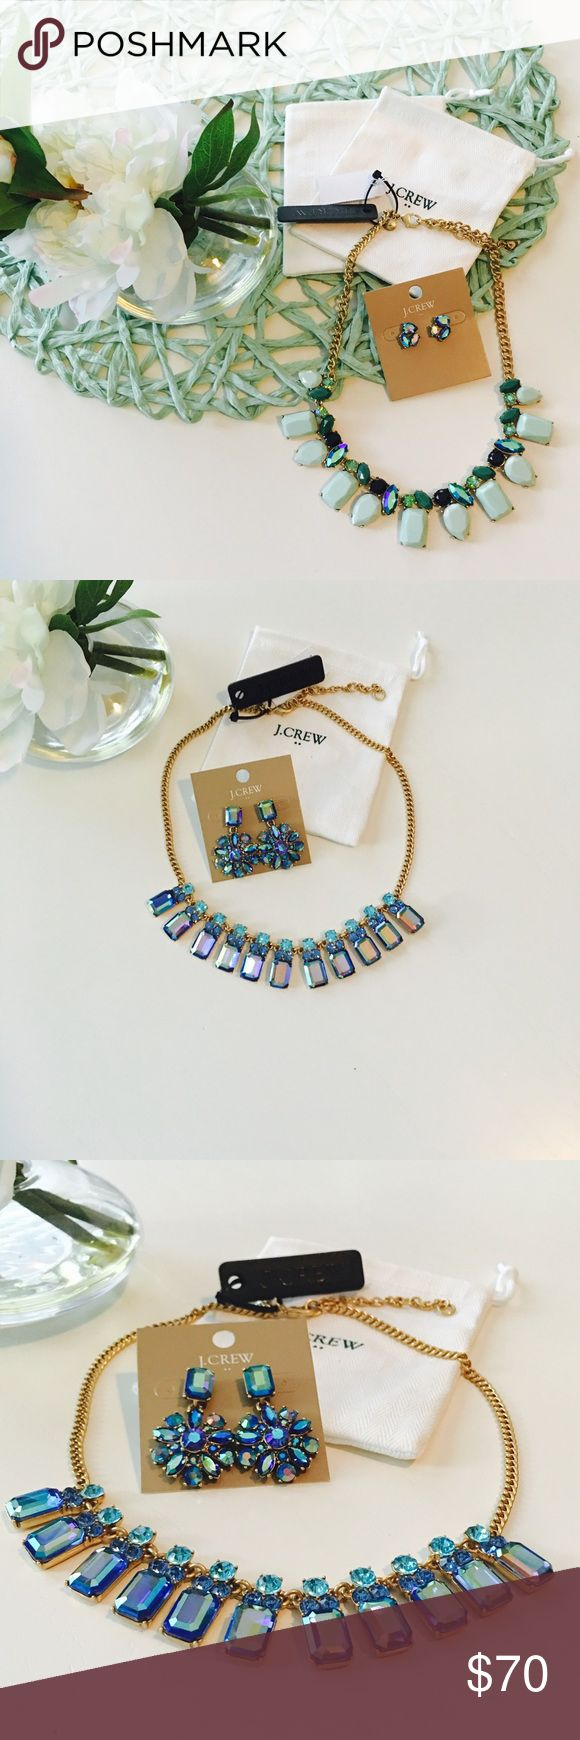 NWT J.CREW Necklace & Earring Set Dazzling Blue Crystal & Gold Necklace Set. J. Crew Jewelry